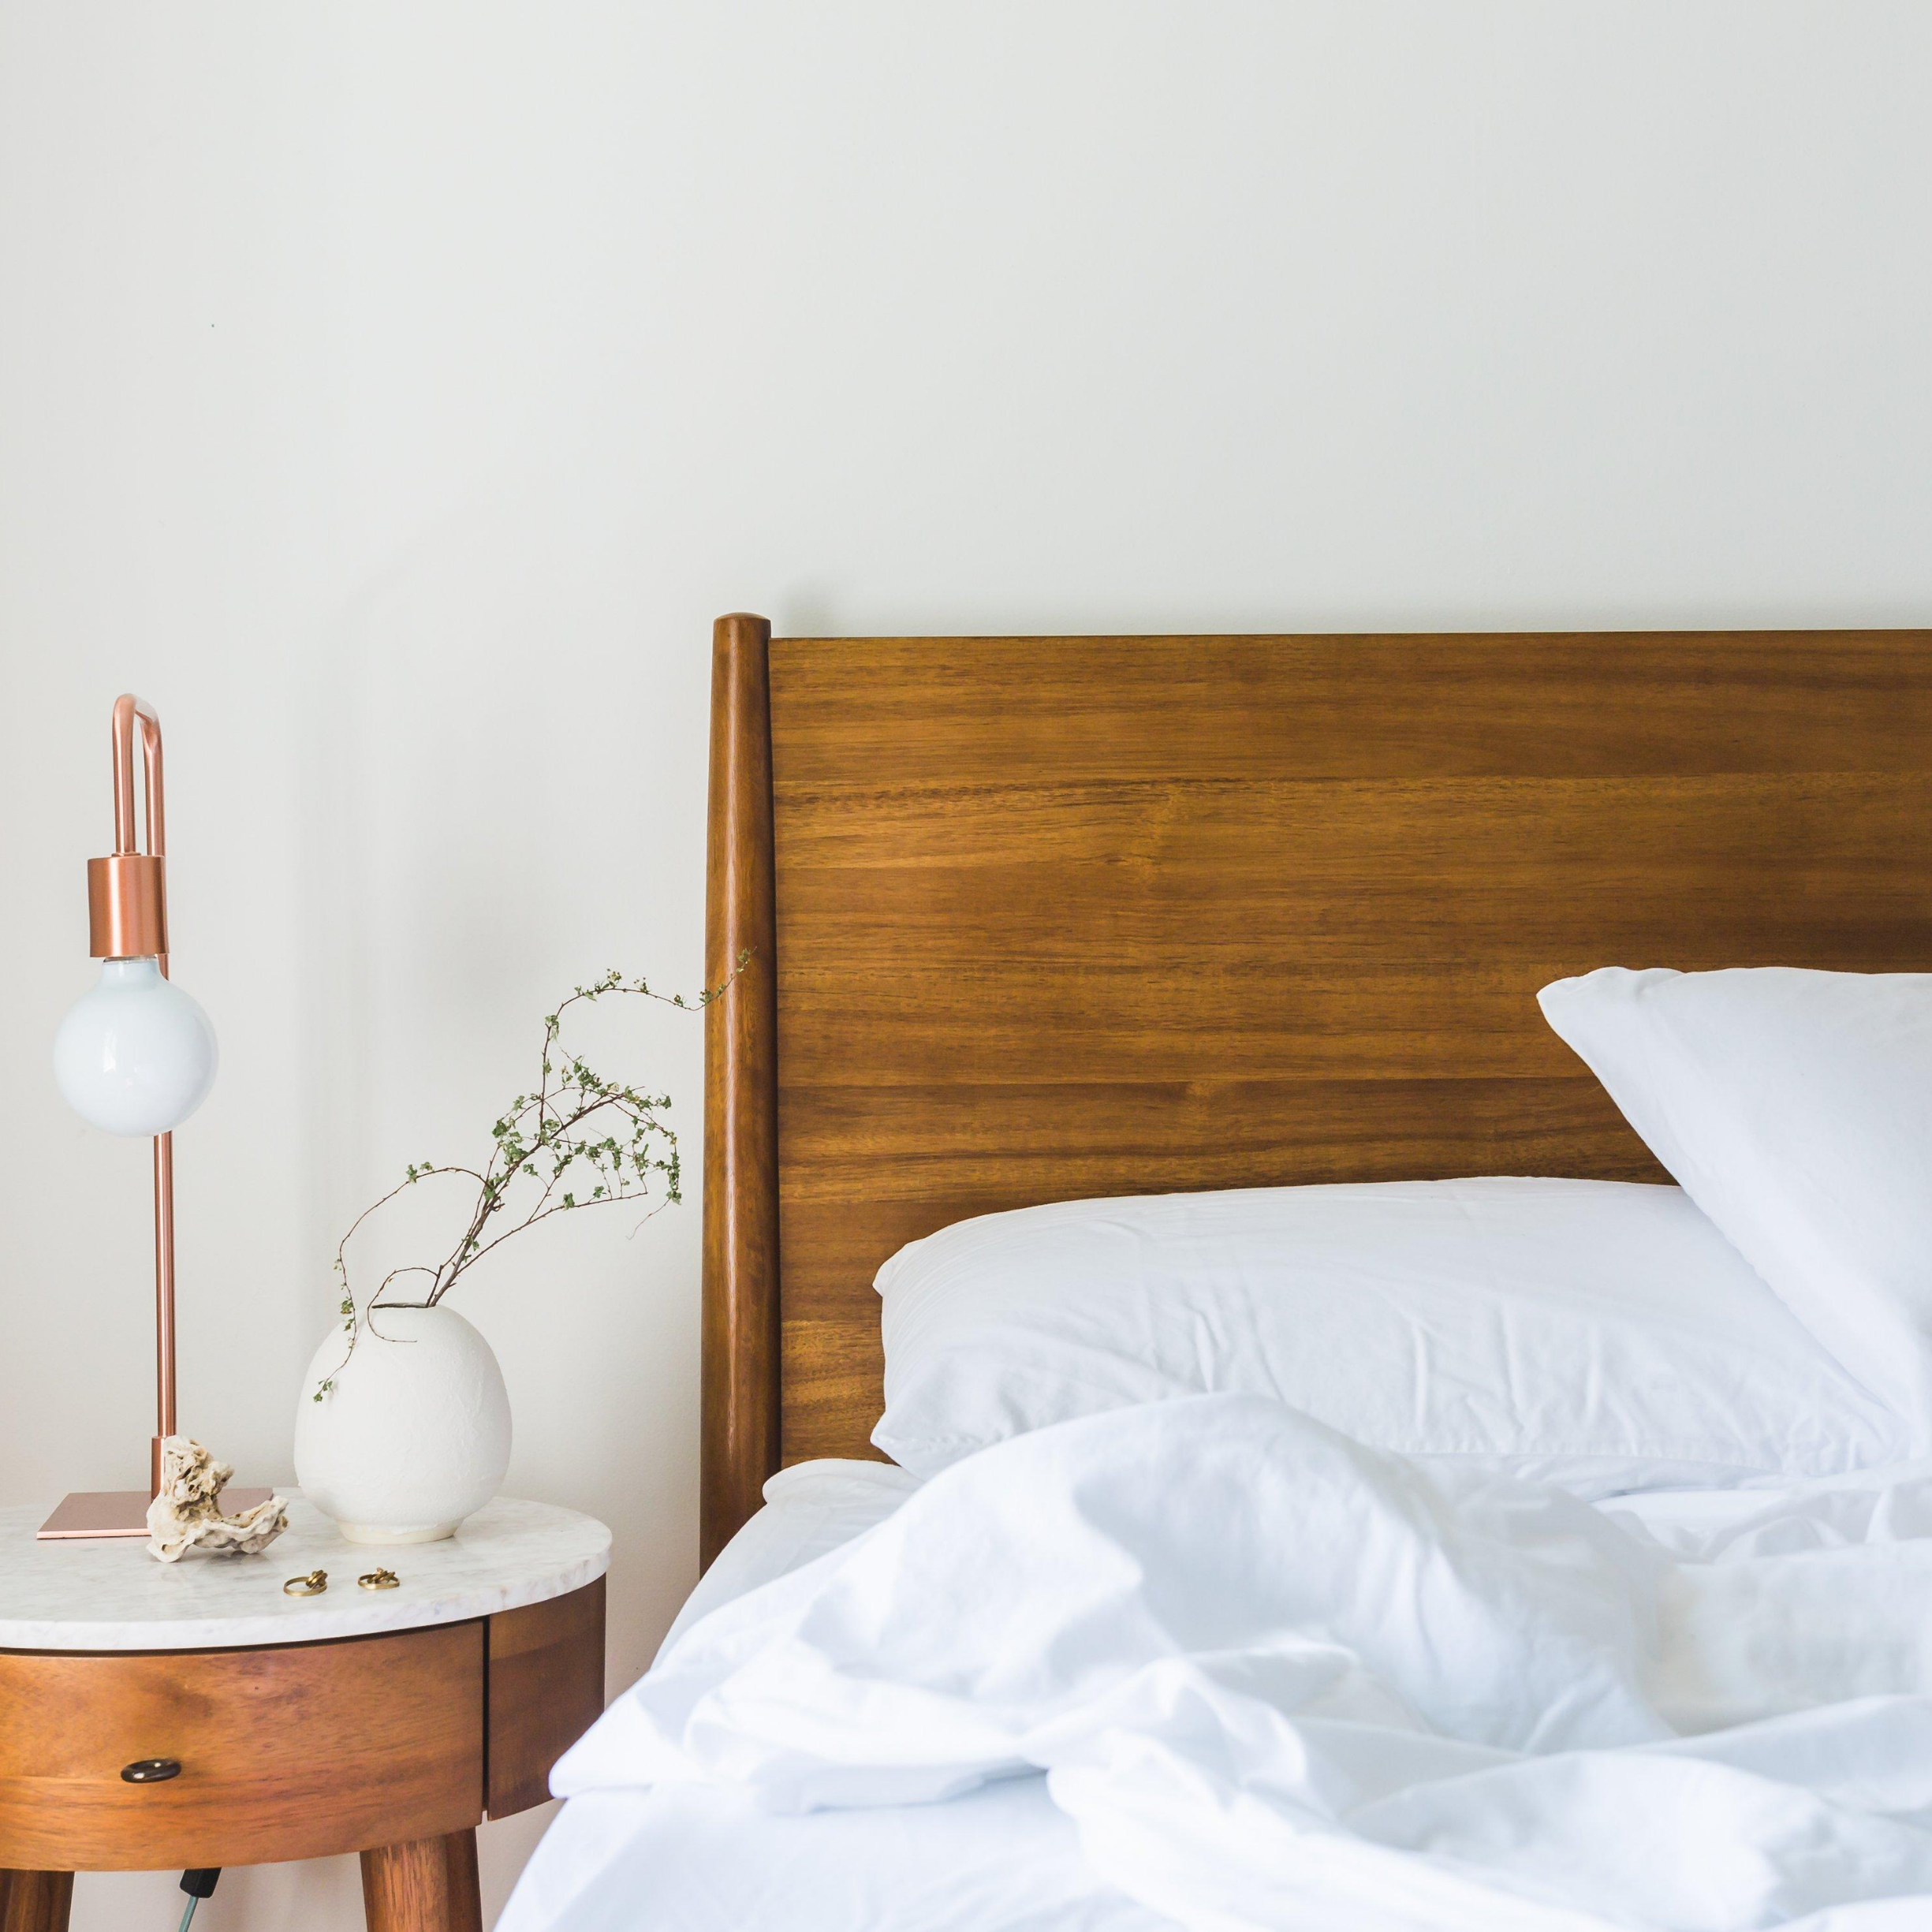 """Bed with wood headboard, white sheets, wooden night stand with white vase and lamp against a white wall, represents """"Need Some Sleep Advice?"""" program"""